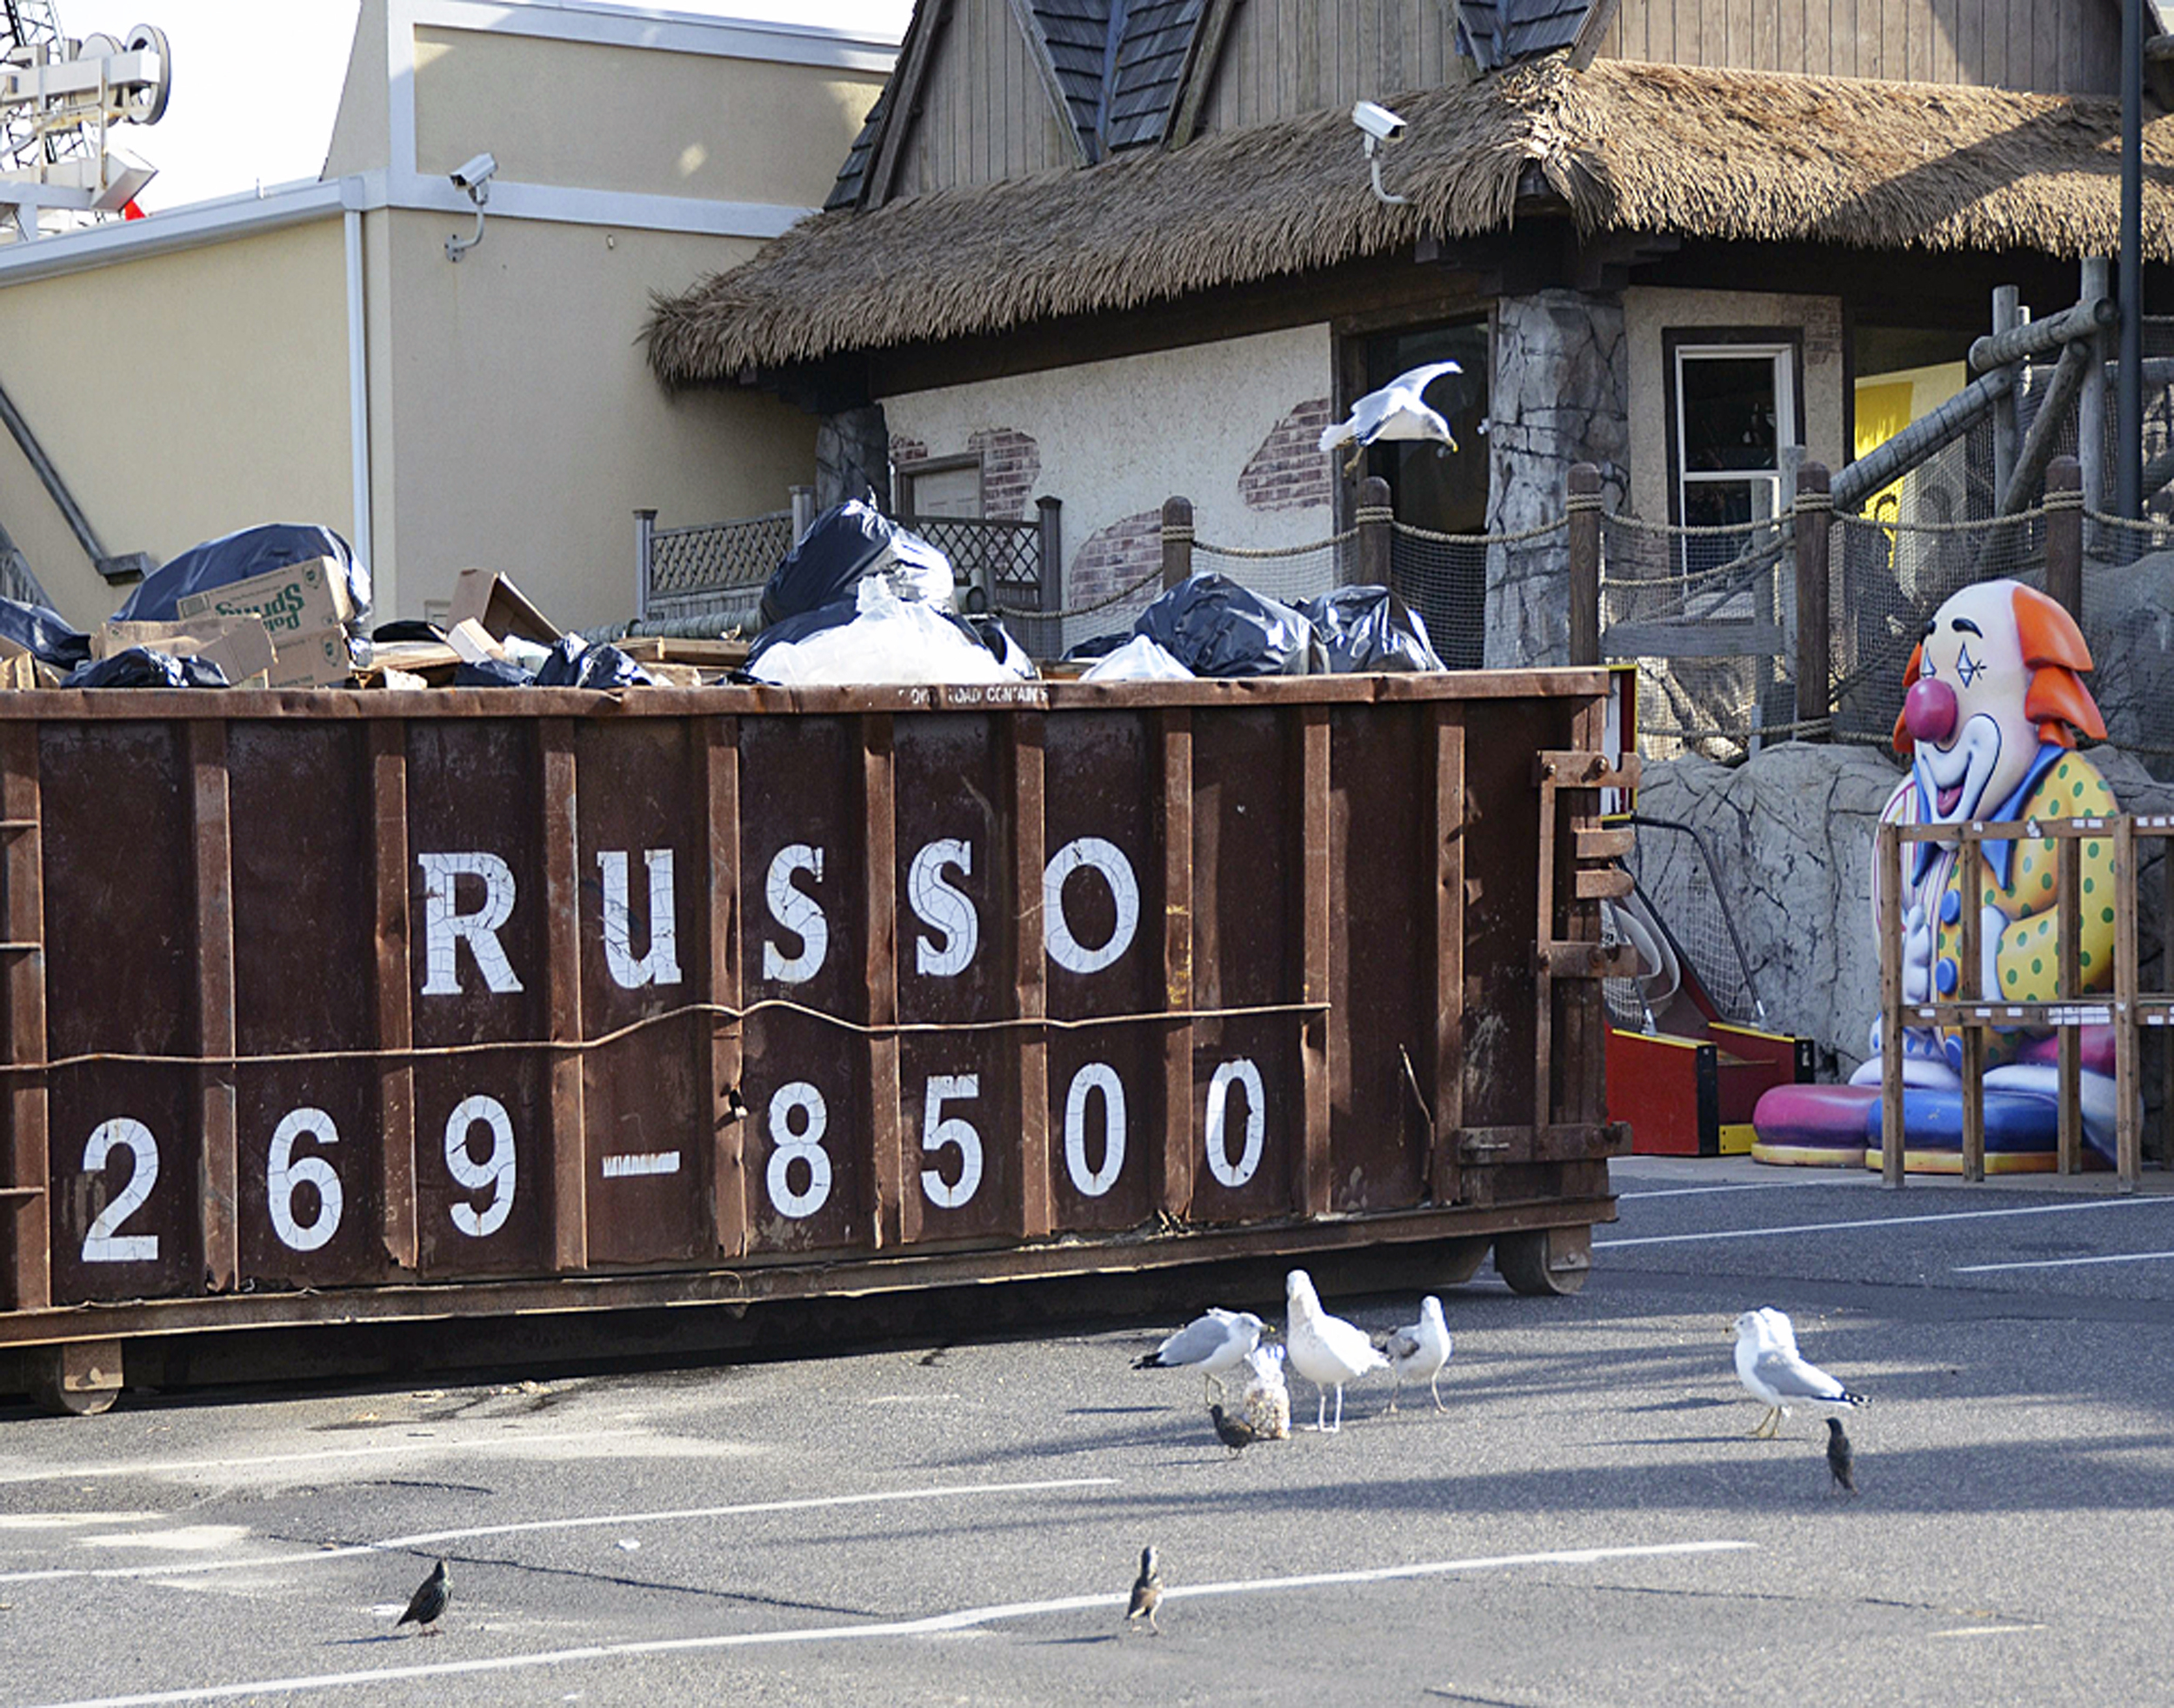 Dumpster, Sea Gulls, and Clown